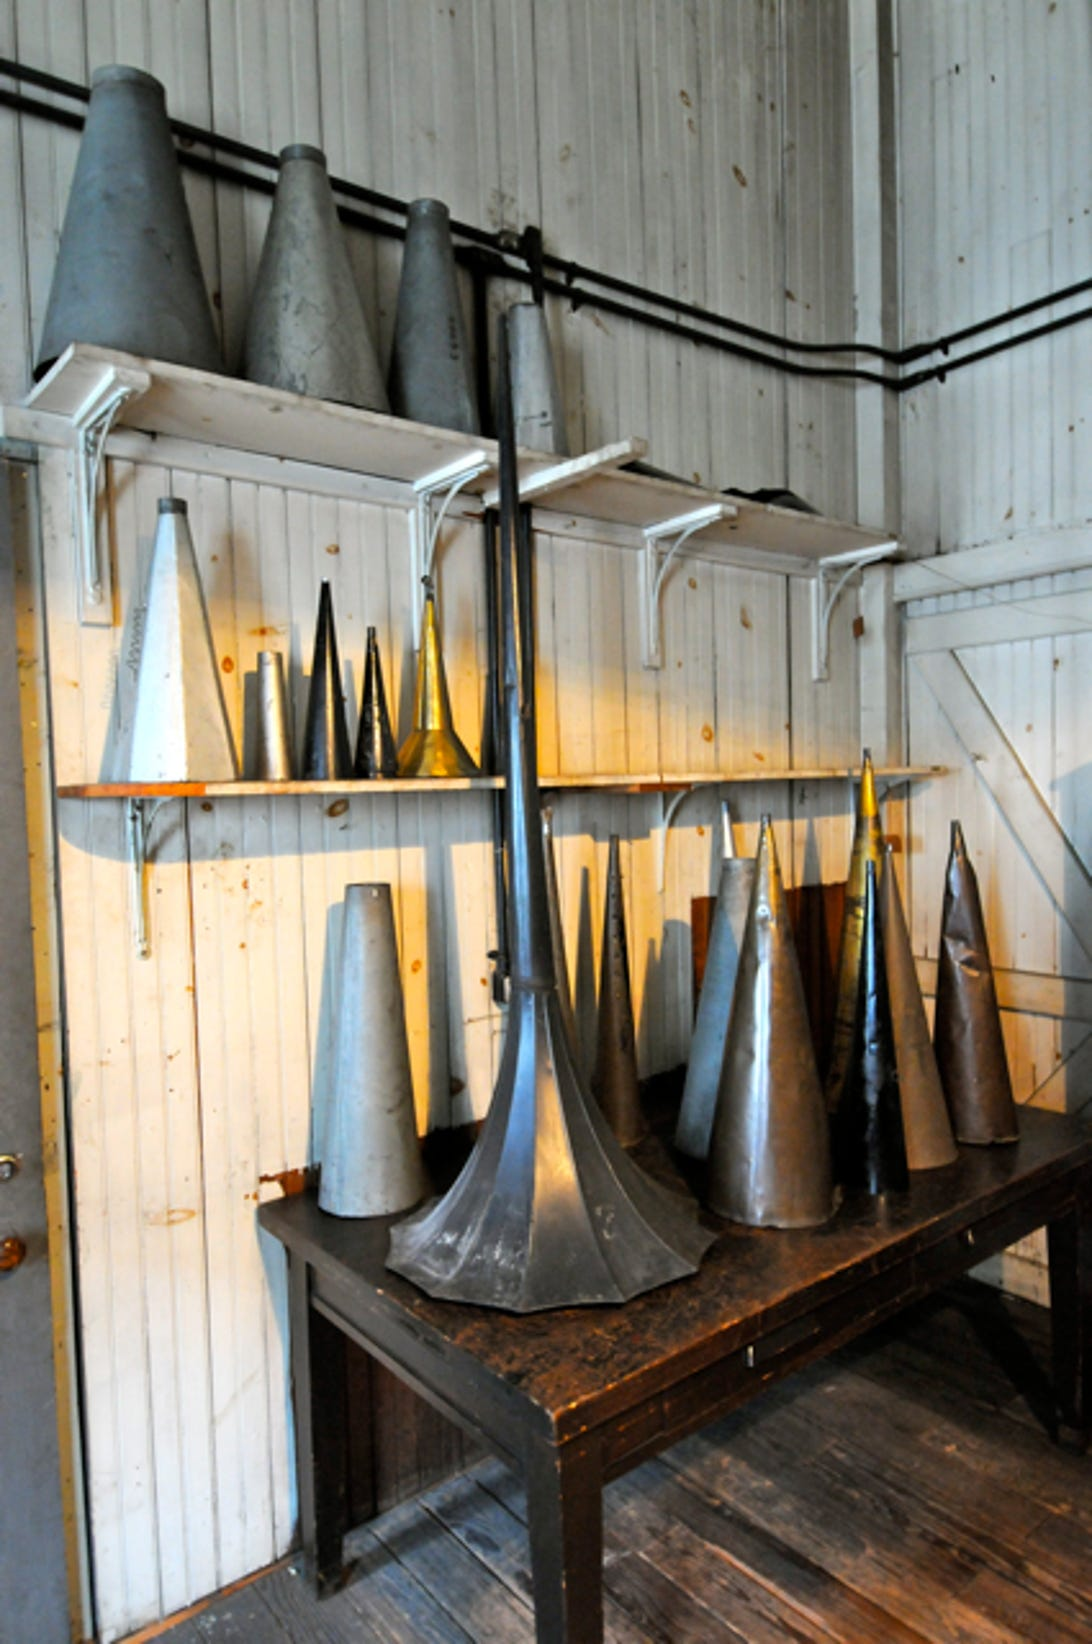 Horn_collection_1.jpg